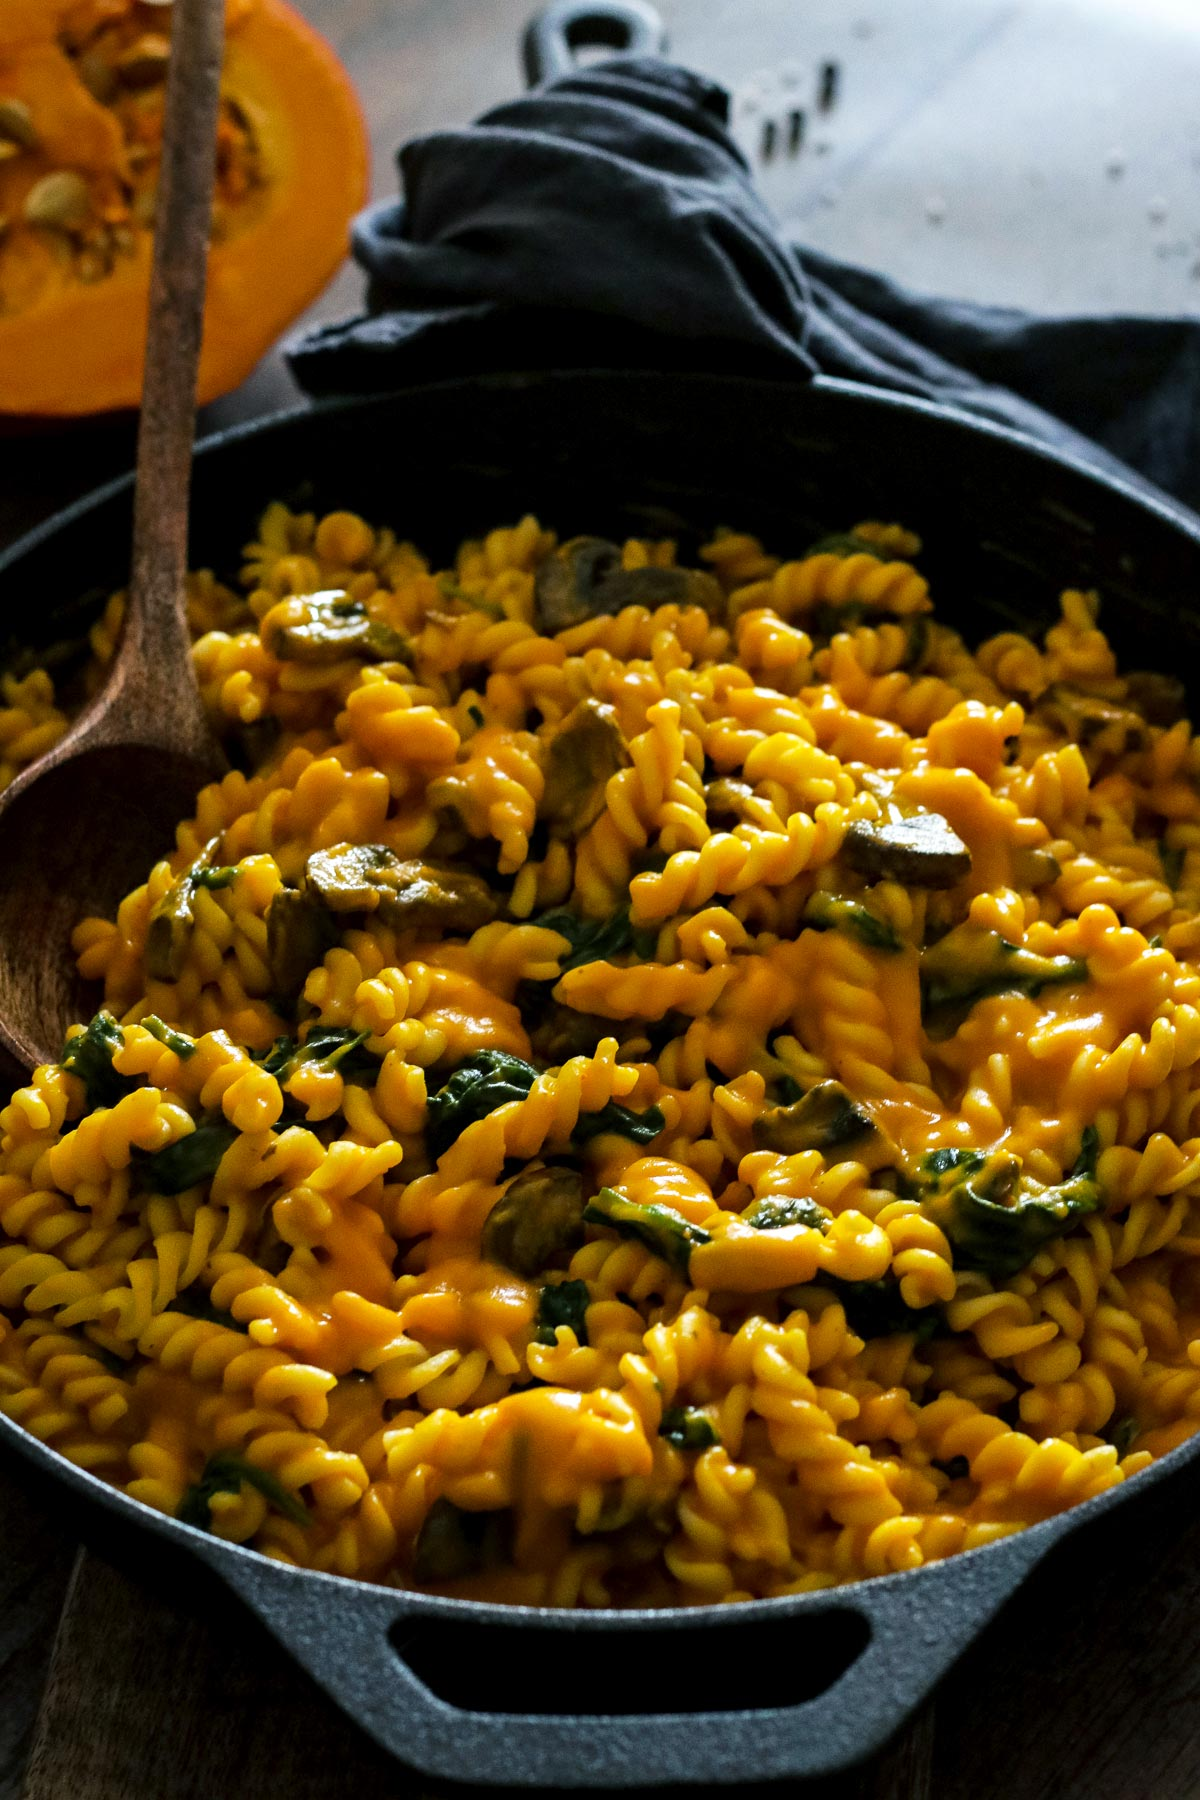 Pumpkin Pasta with Mushrooms and Spinach in a Skillet.